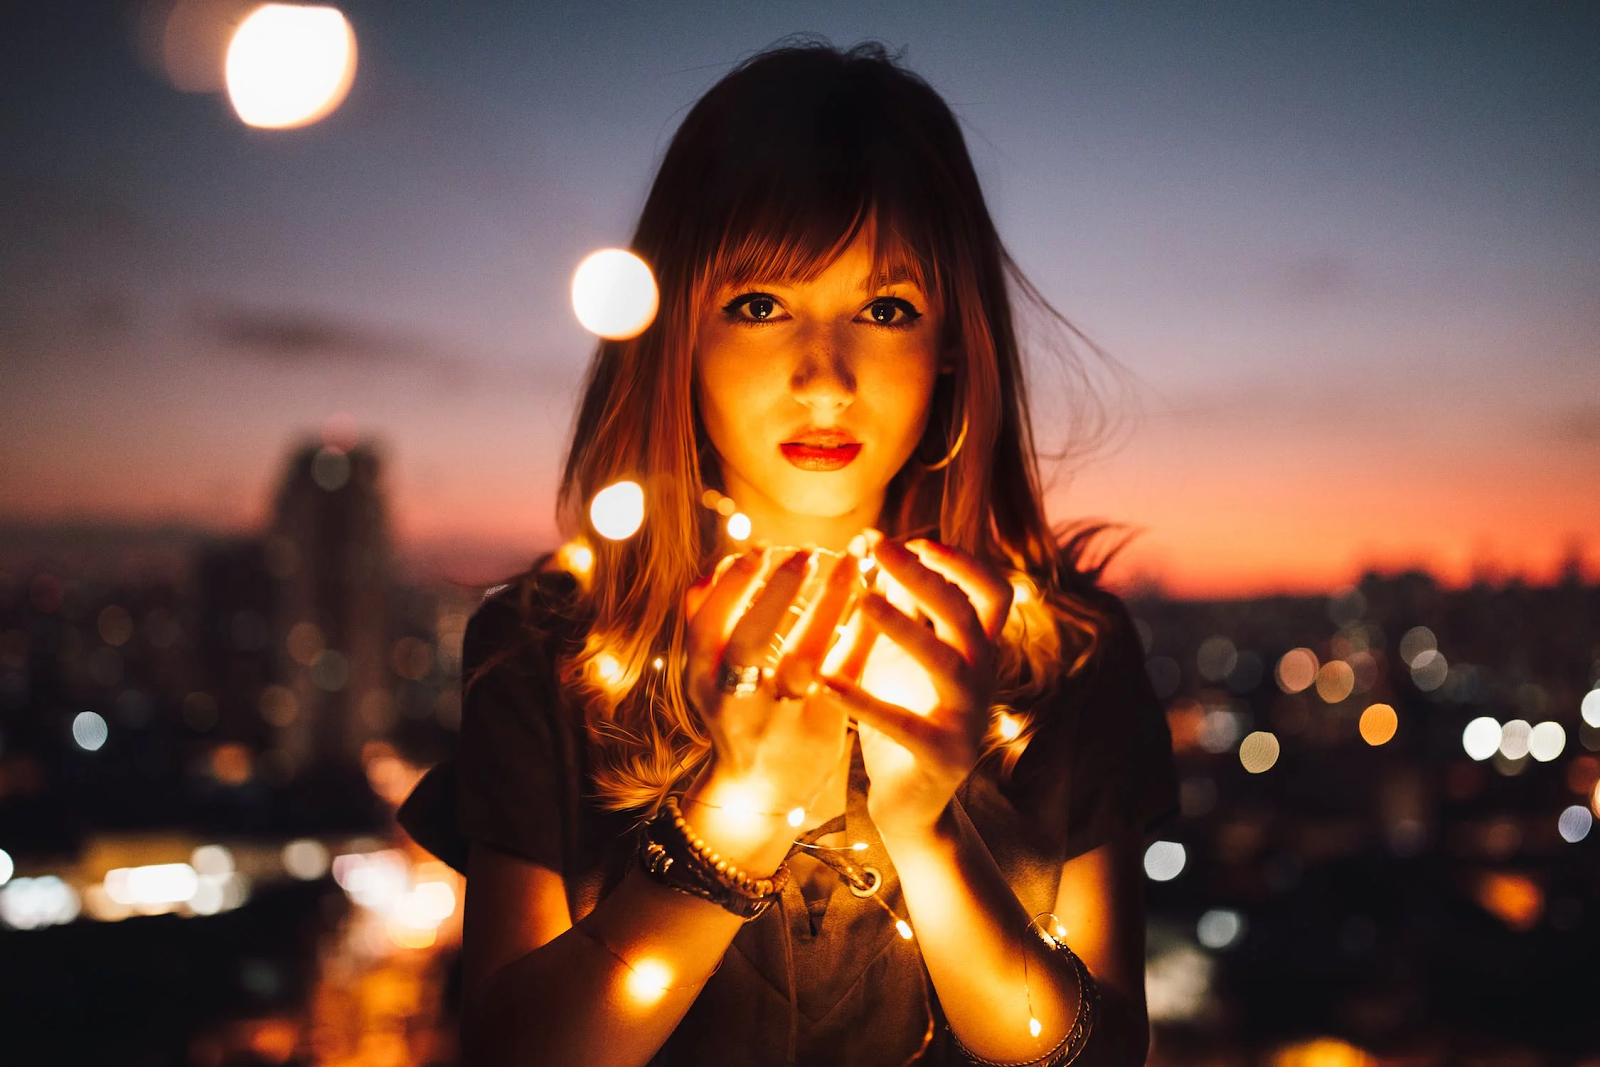 girl holding light at night